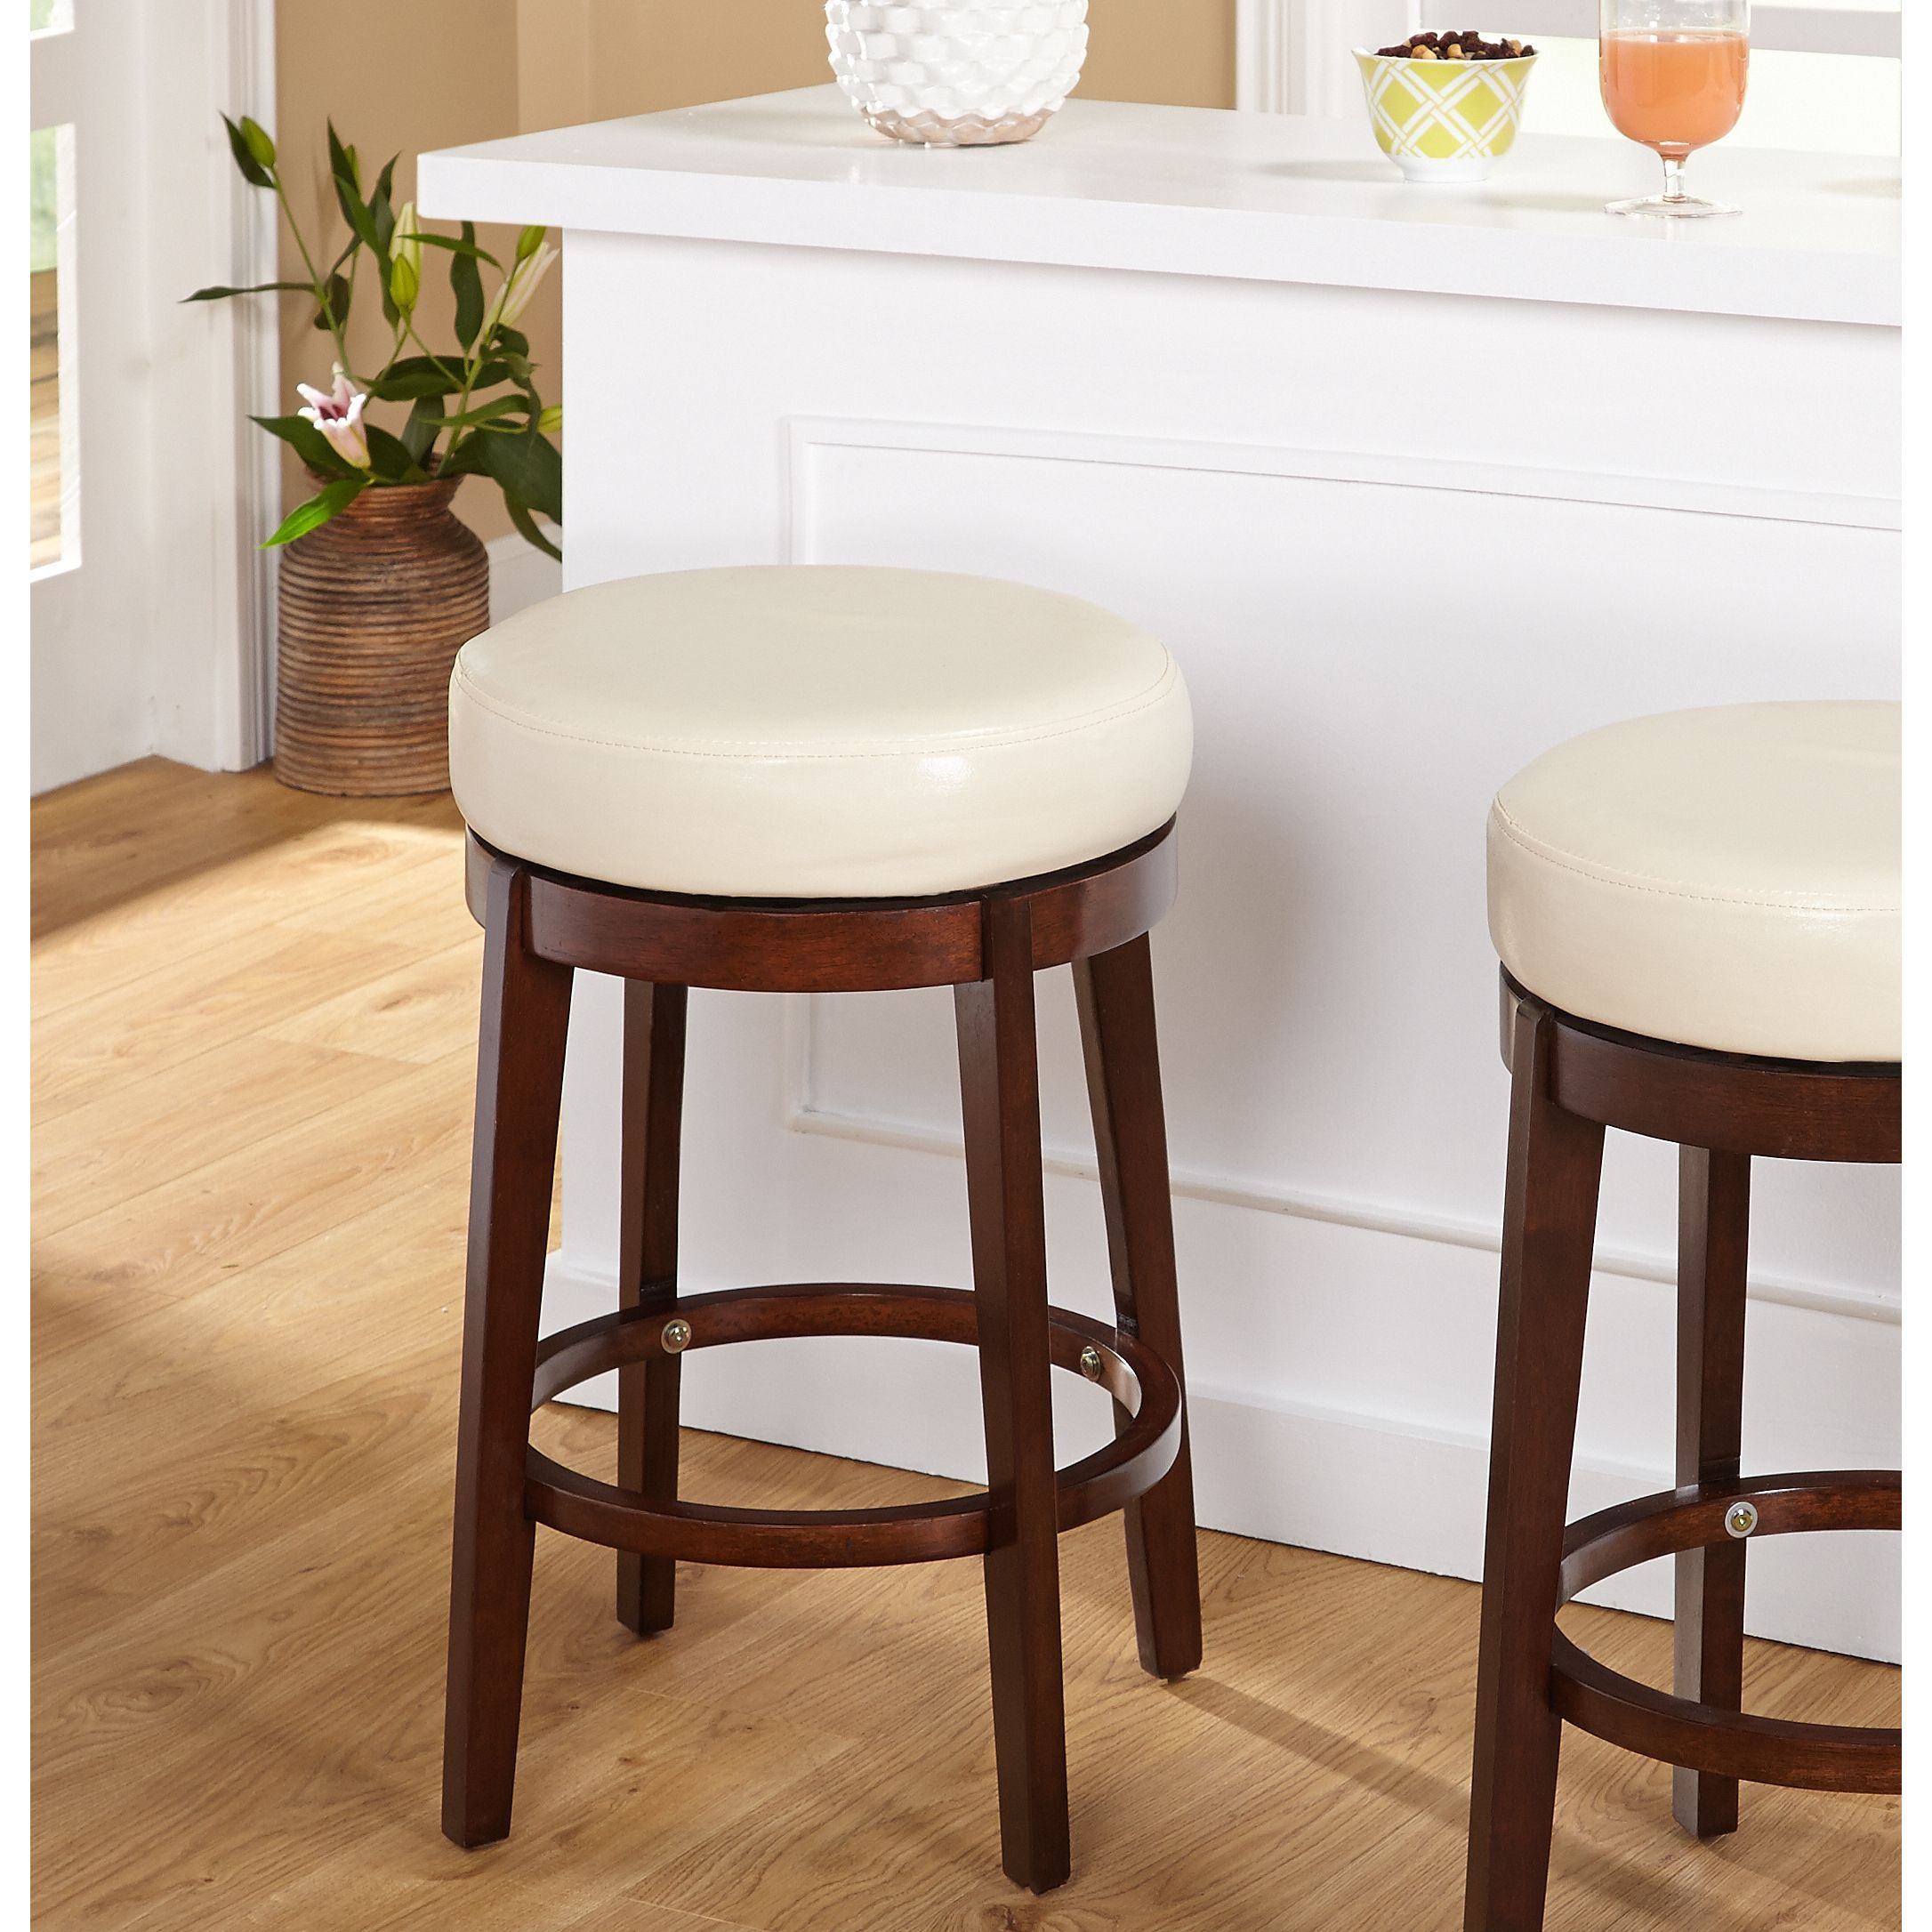 Astounding Simple Living 24 Inch Avenue Swivel Stool 24 Inch Avenue Onthecornerstone Fun Painted Chair Ideas Images Onthecornerstoneorg